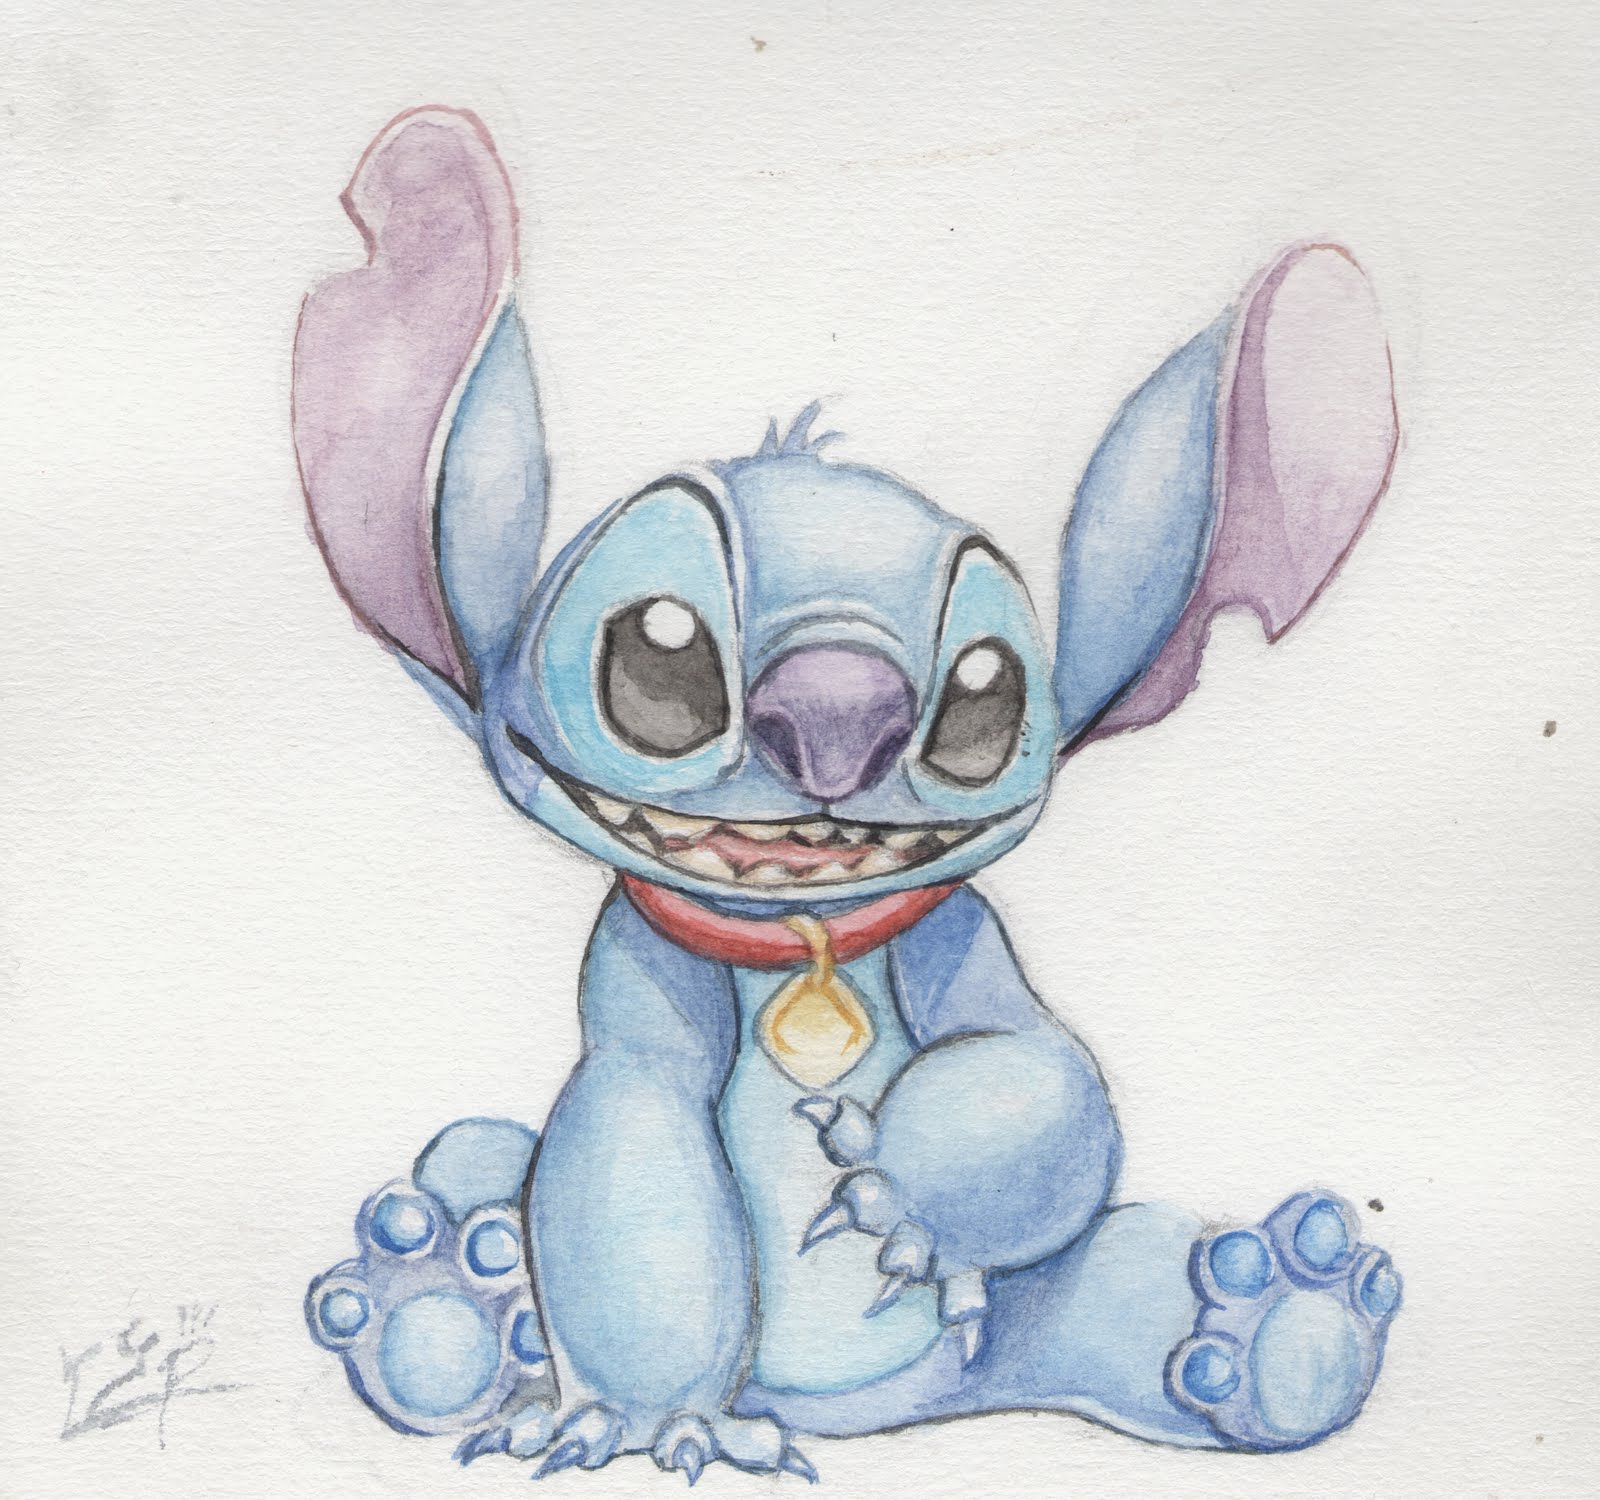 Little j art stitch - Dessin de stitch ...